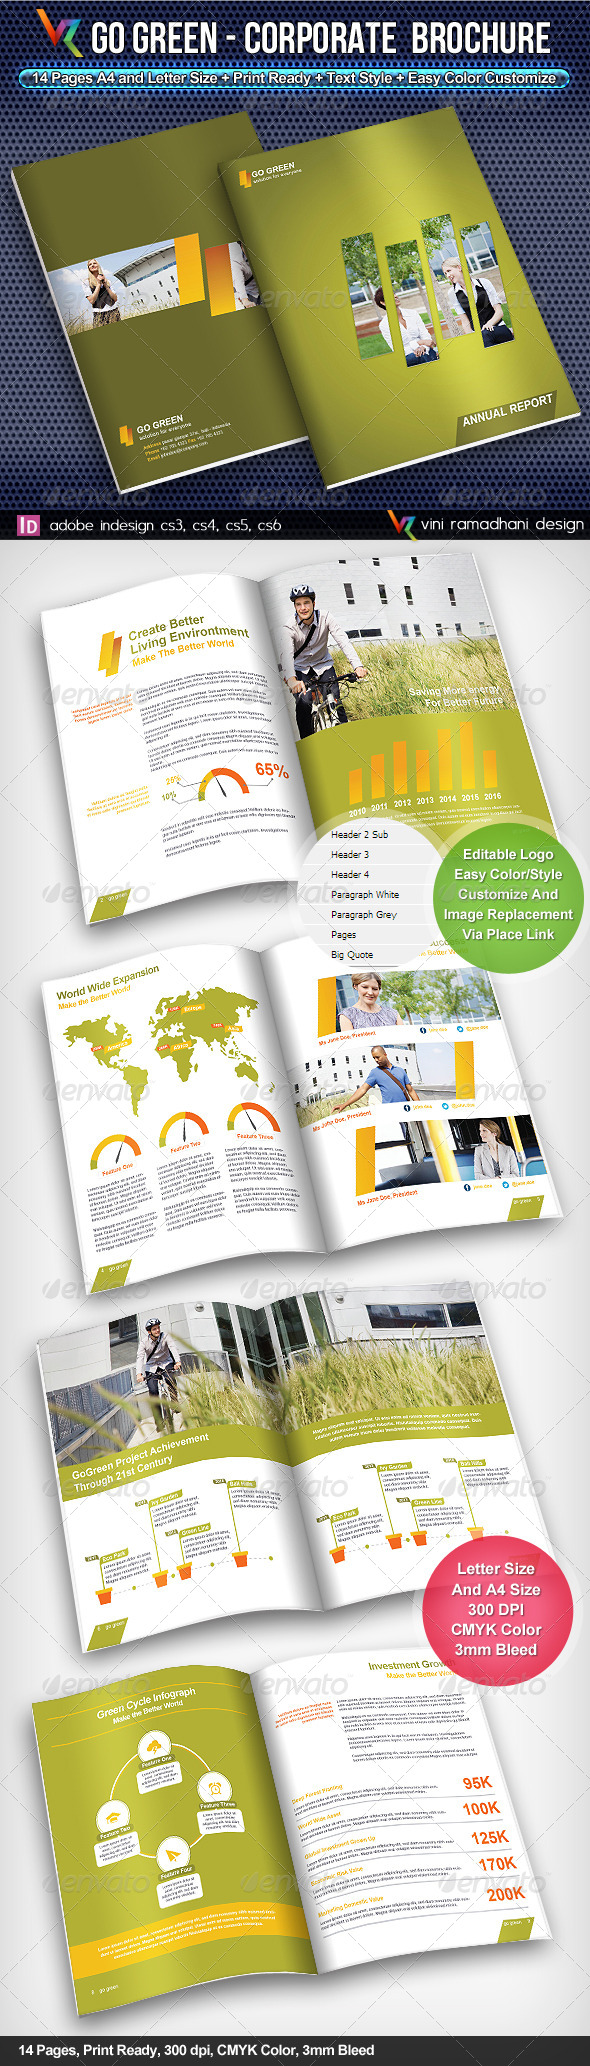 GoGreen Corporate Brochure - Corporate Brochures